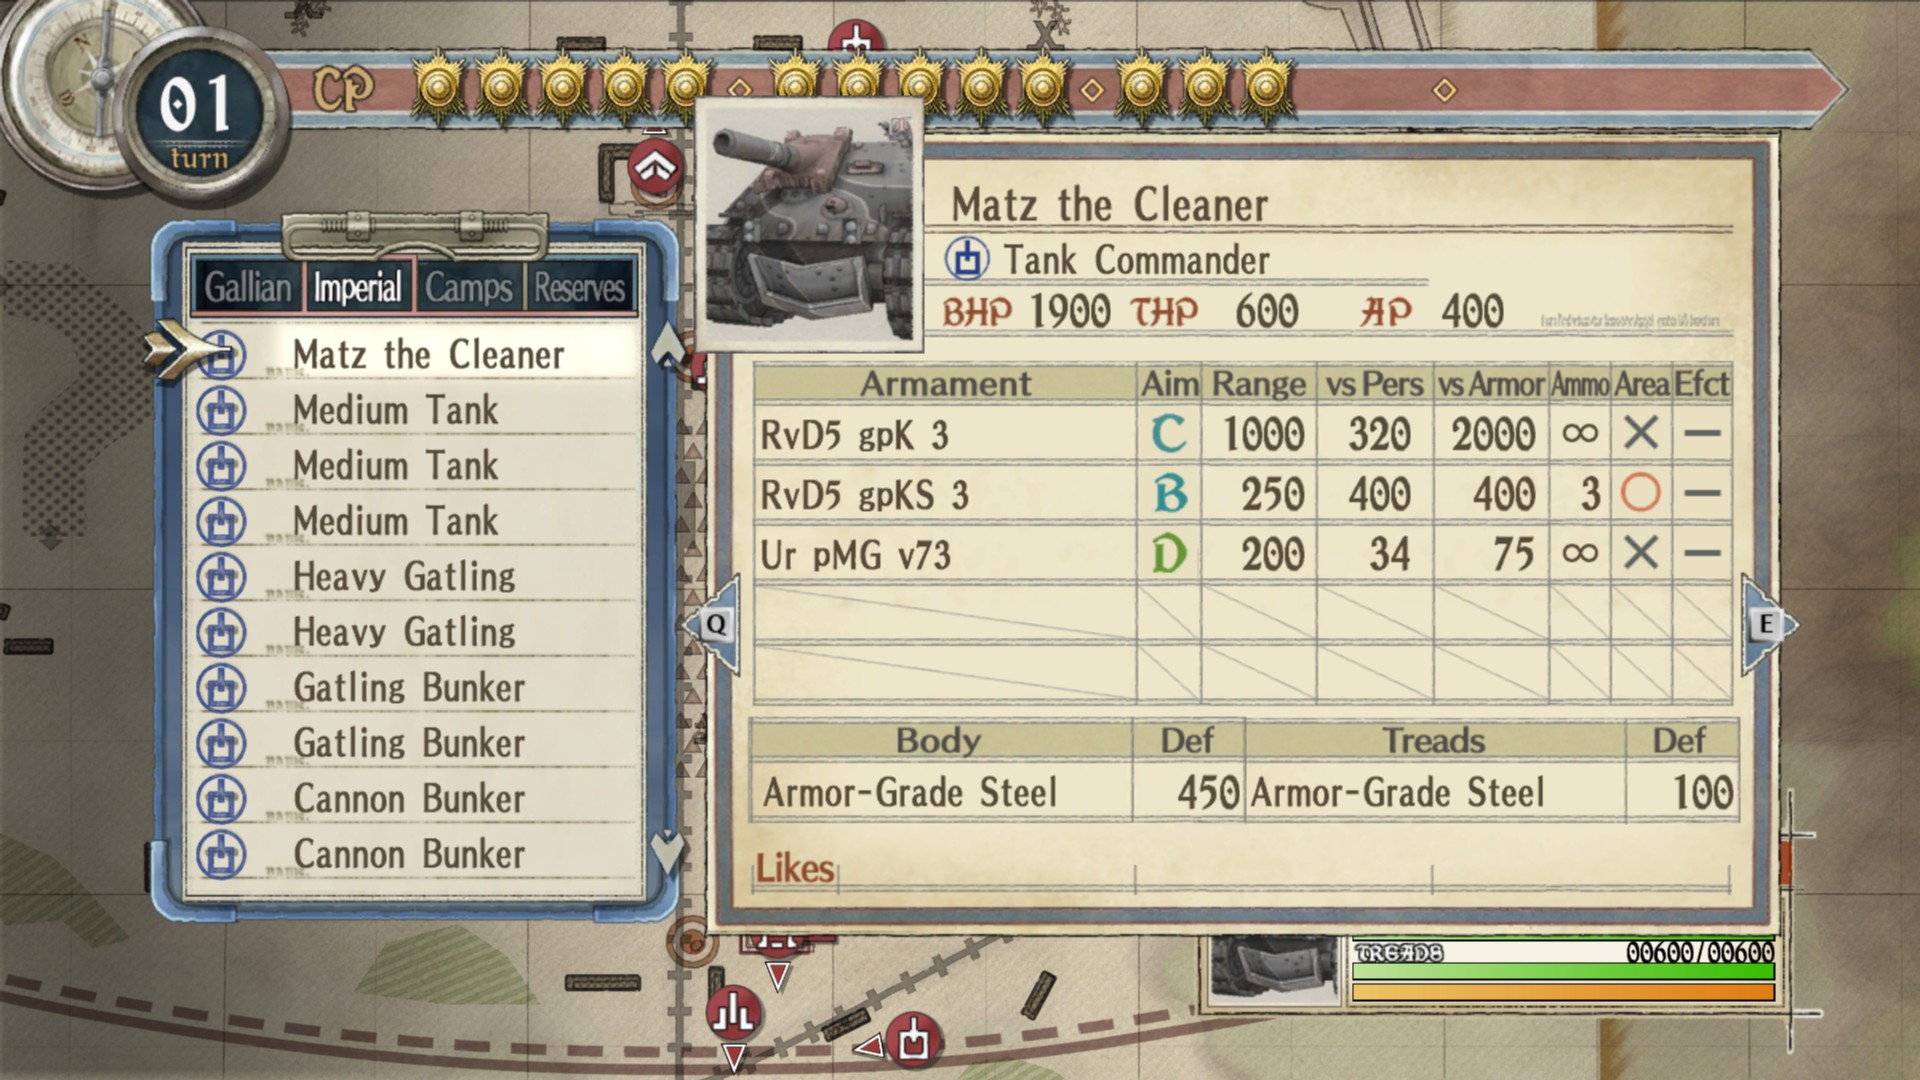 Matz the Cleaner (VC1)